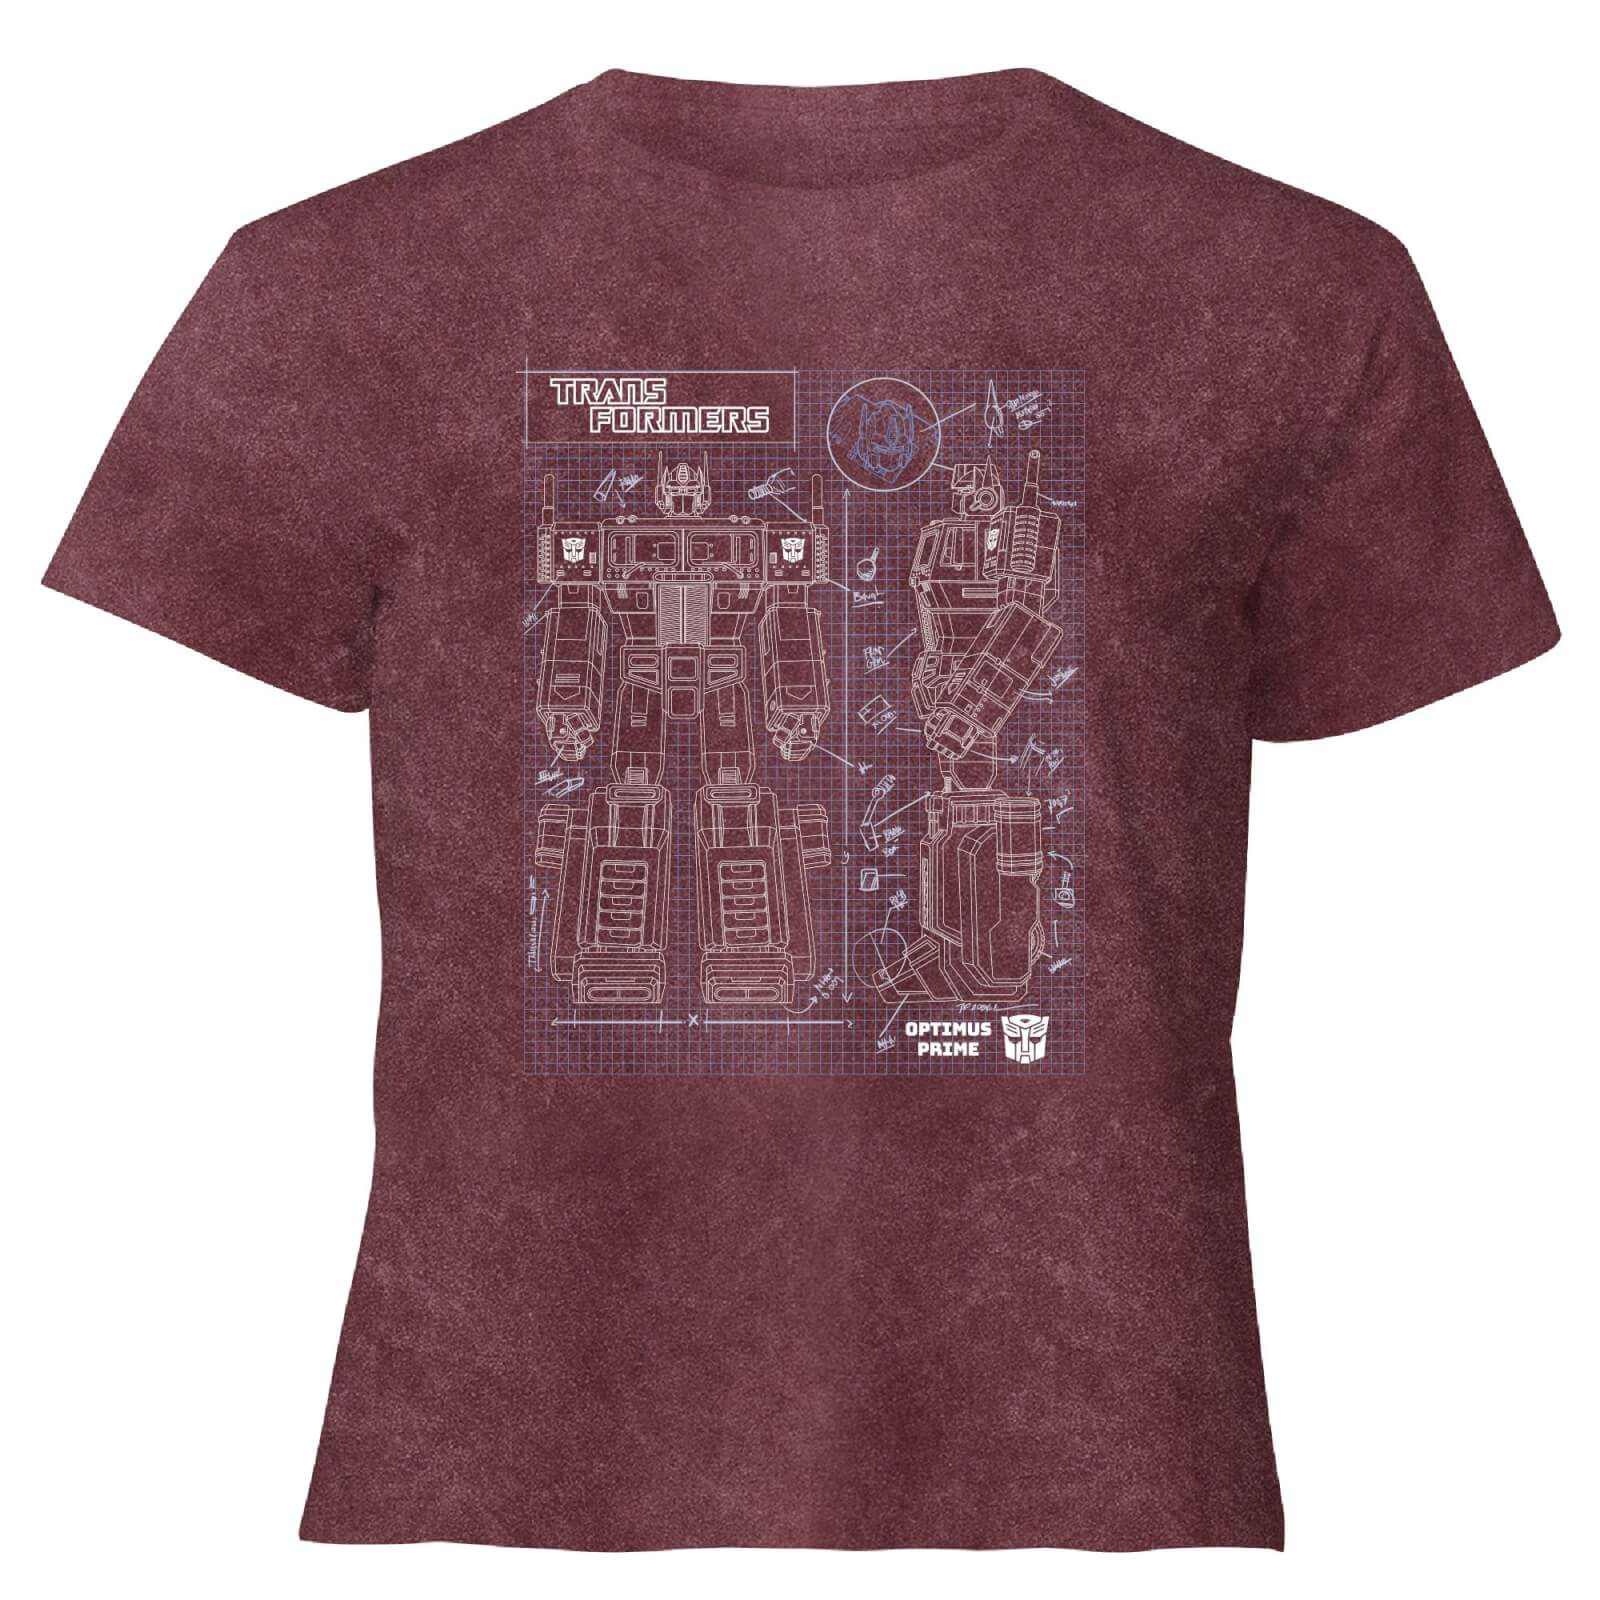 Transformers Optimus Prime Schematic   Womens Cropped T Shirt   Burgundy Acid Wash   XS   Burgundy Acid Wash